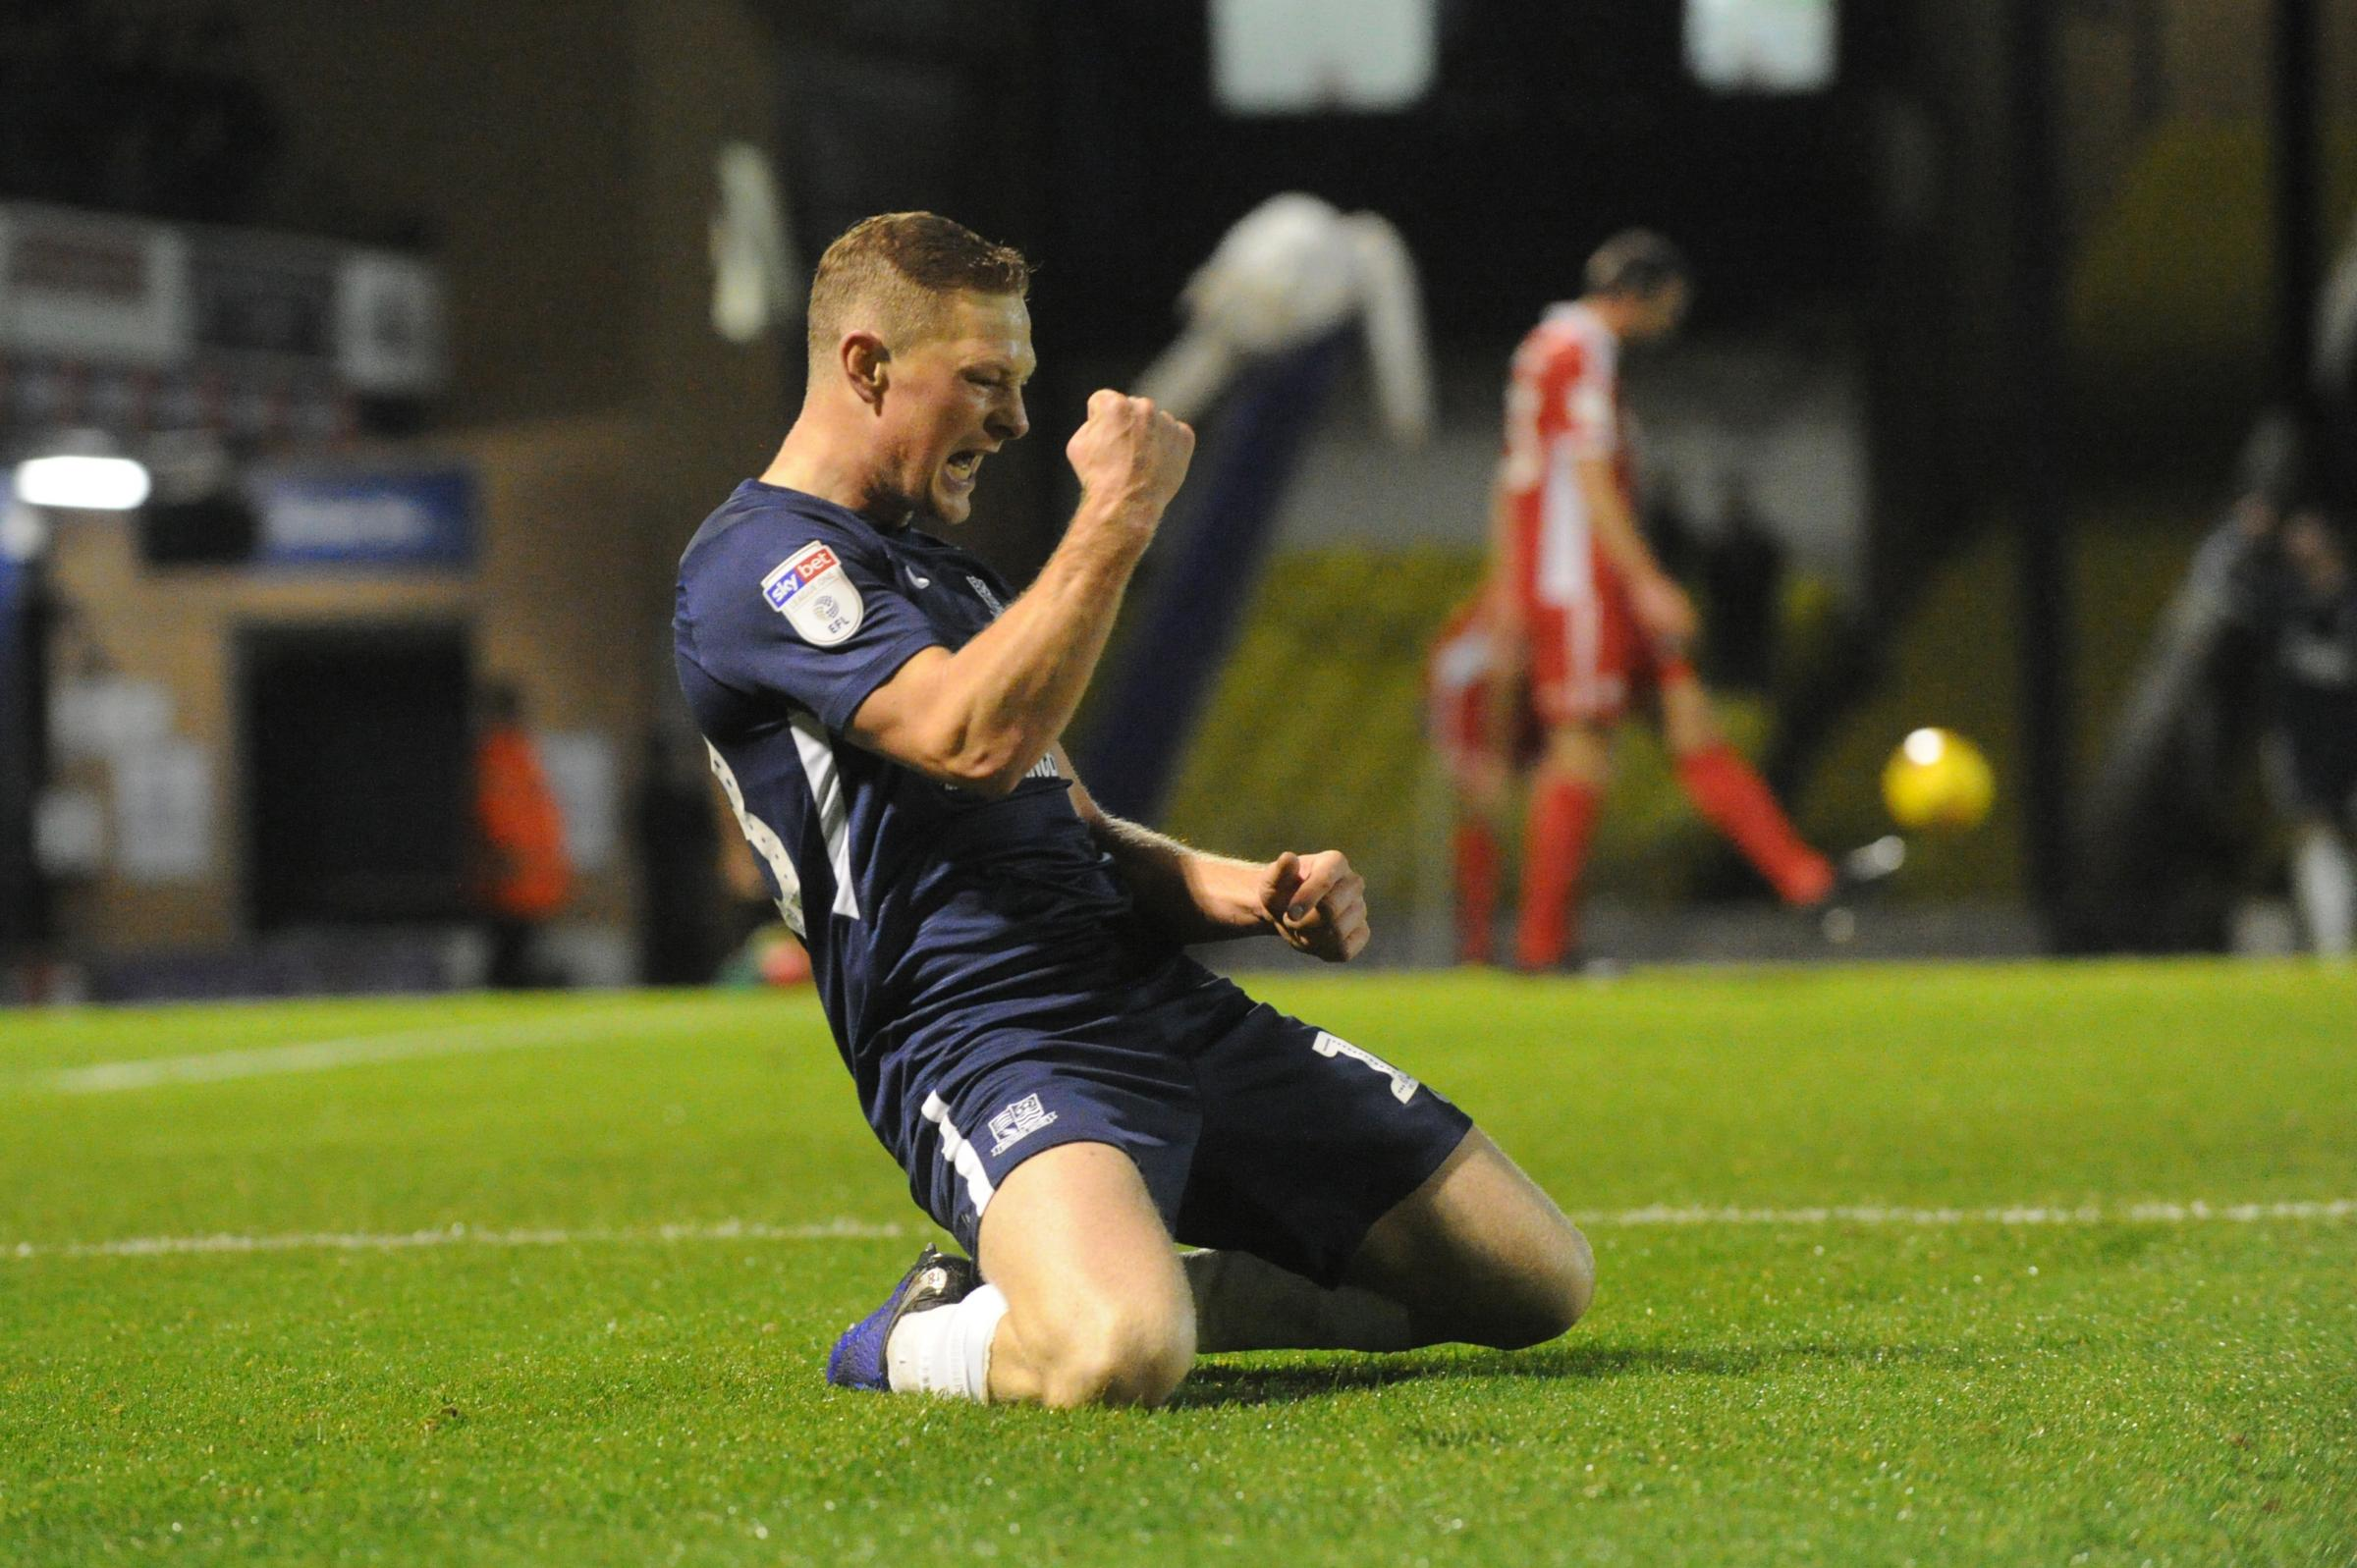 Happy - Southend United skipper Sam Mantom